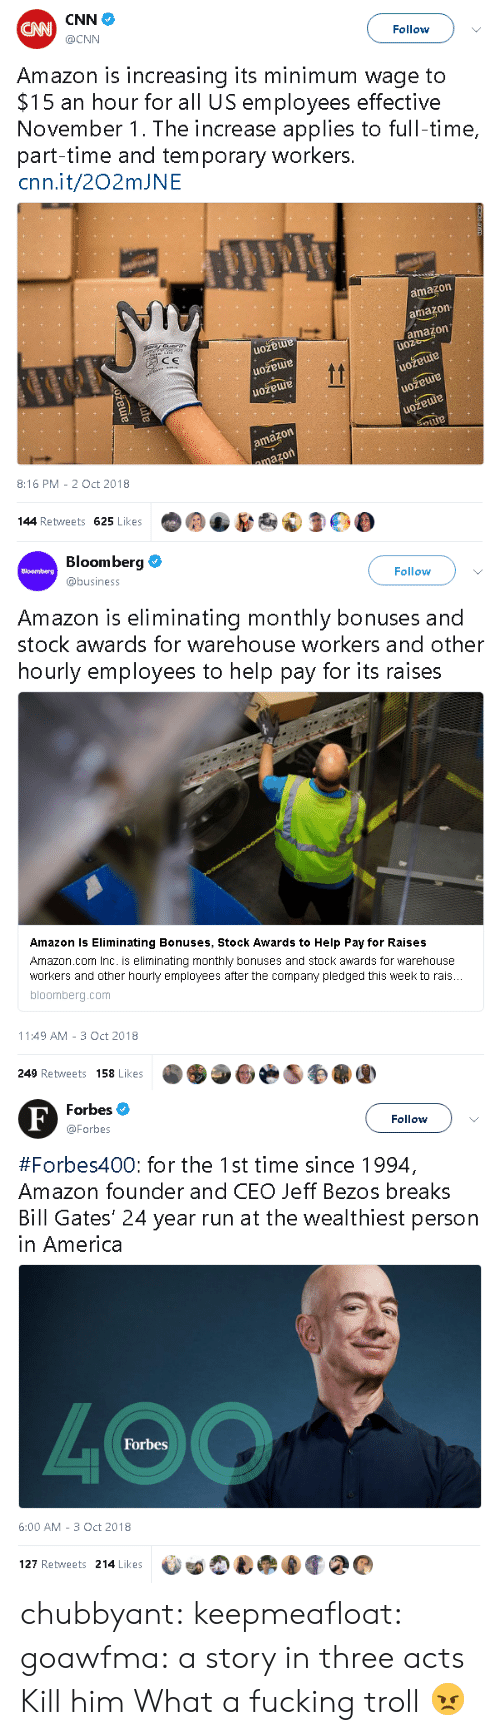 Troll: CNN  CAN  @CNN  Follow  Amazon is increasing its minimum wage to  $15 an hour for all US employees effective  November 1. The increase applies to full-time,  part-time and temporary workers.  cnn.it/202mJNE  amazon  amazon  amazon  uoz  ocyduer  uozeue  CE  tt  amazon  amazon  uožeuie  uožeuue  amazon  ama  amazon  mazon  8:16 PM 2 Oct 2018  144 Retweets 625 Likes  le  amazo  ama  amagm  t   Bloomberg  Follow  Bloomberg  @business  Amazon is eliminating  monthly bonuses and  stock awards for warehouse workers and other  hourly employees to help pay for its raises  Amazon Is Eliminating Bonuses, Stock Awards to Help Pay for Raises  Amazon.com Inc. is eliminating monthly bonuses and stock awards for warehouse  workers and other hourly employees after the company pledged this week to rais...  bloomberg.com  11:49 AM 3 Oct 2018  249 Retweets 158 Likes   Forbes  F  Follow  @Forbes  #Forbes400: for the 1st time since 1994,  Amazon founder and CEO Jeff Bezos breaks  Bill Gates' 24 year run at the wealthiest person  in America  4OO  Forbes  6:00 AM 3 Oct 2018  127 Retweets 214 Likes chubbyant:  keepmeafloat:   goawfma: a story in three acts  Kill him   What a fucking troll 😠